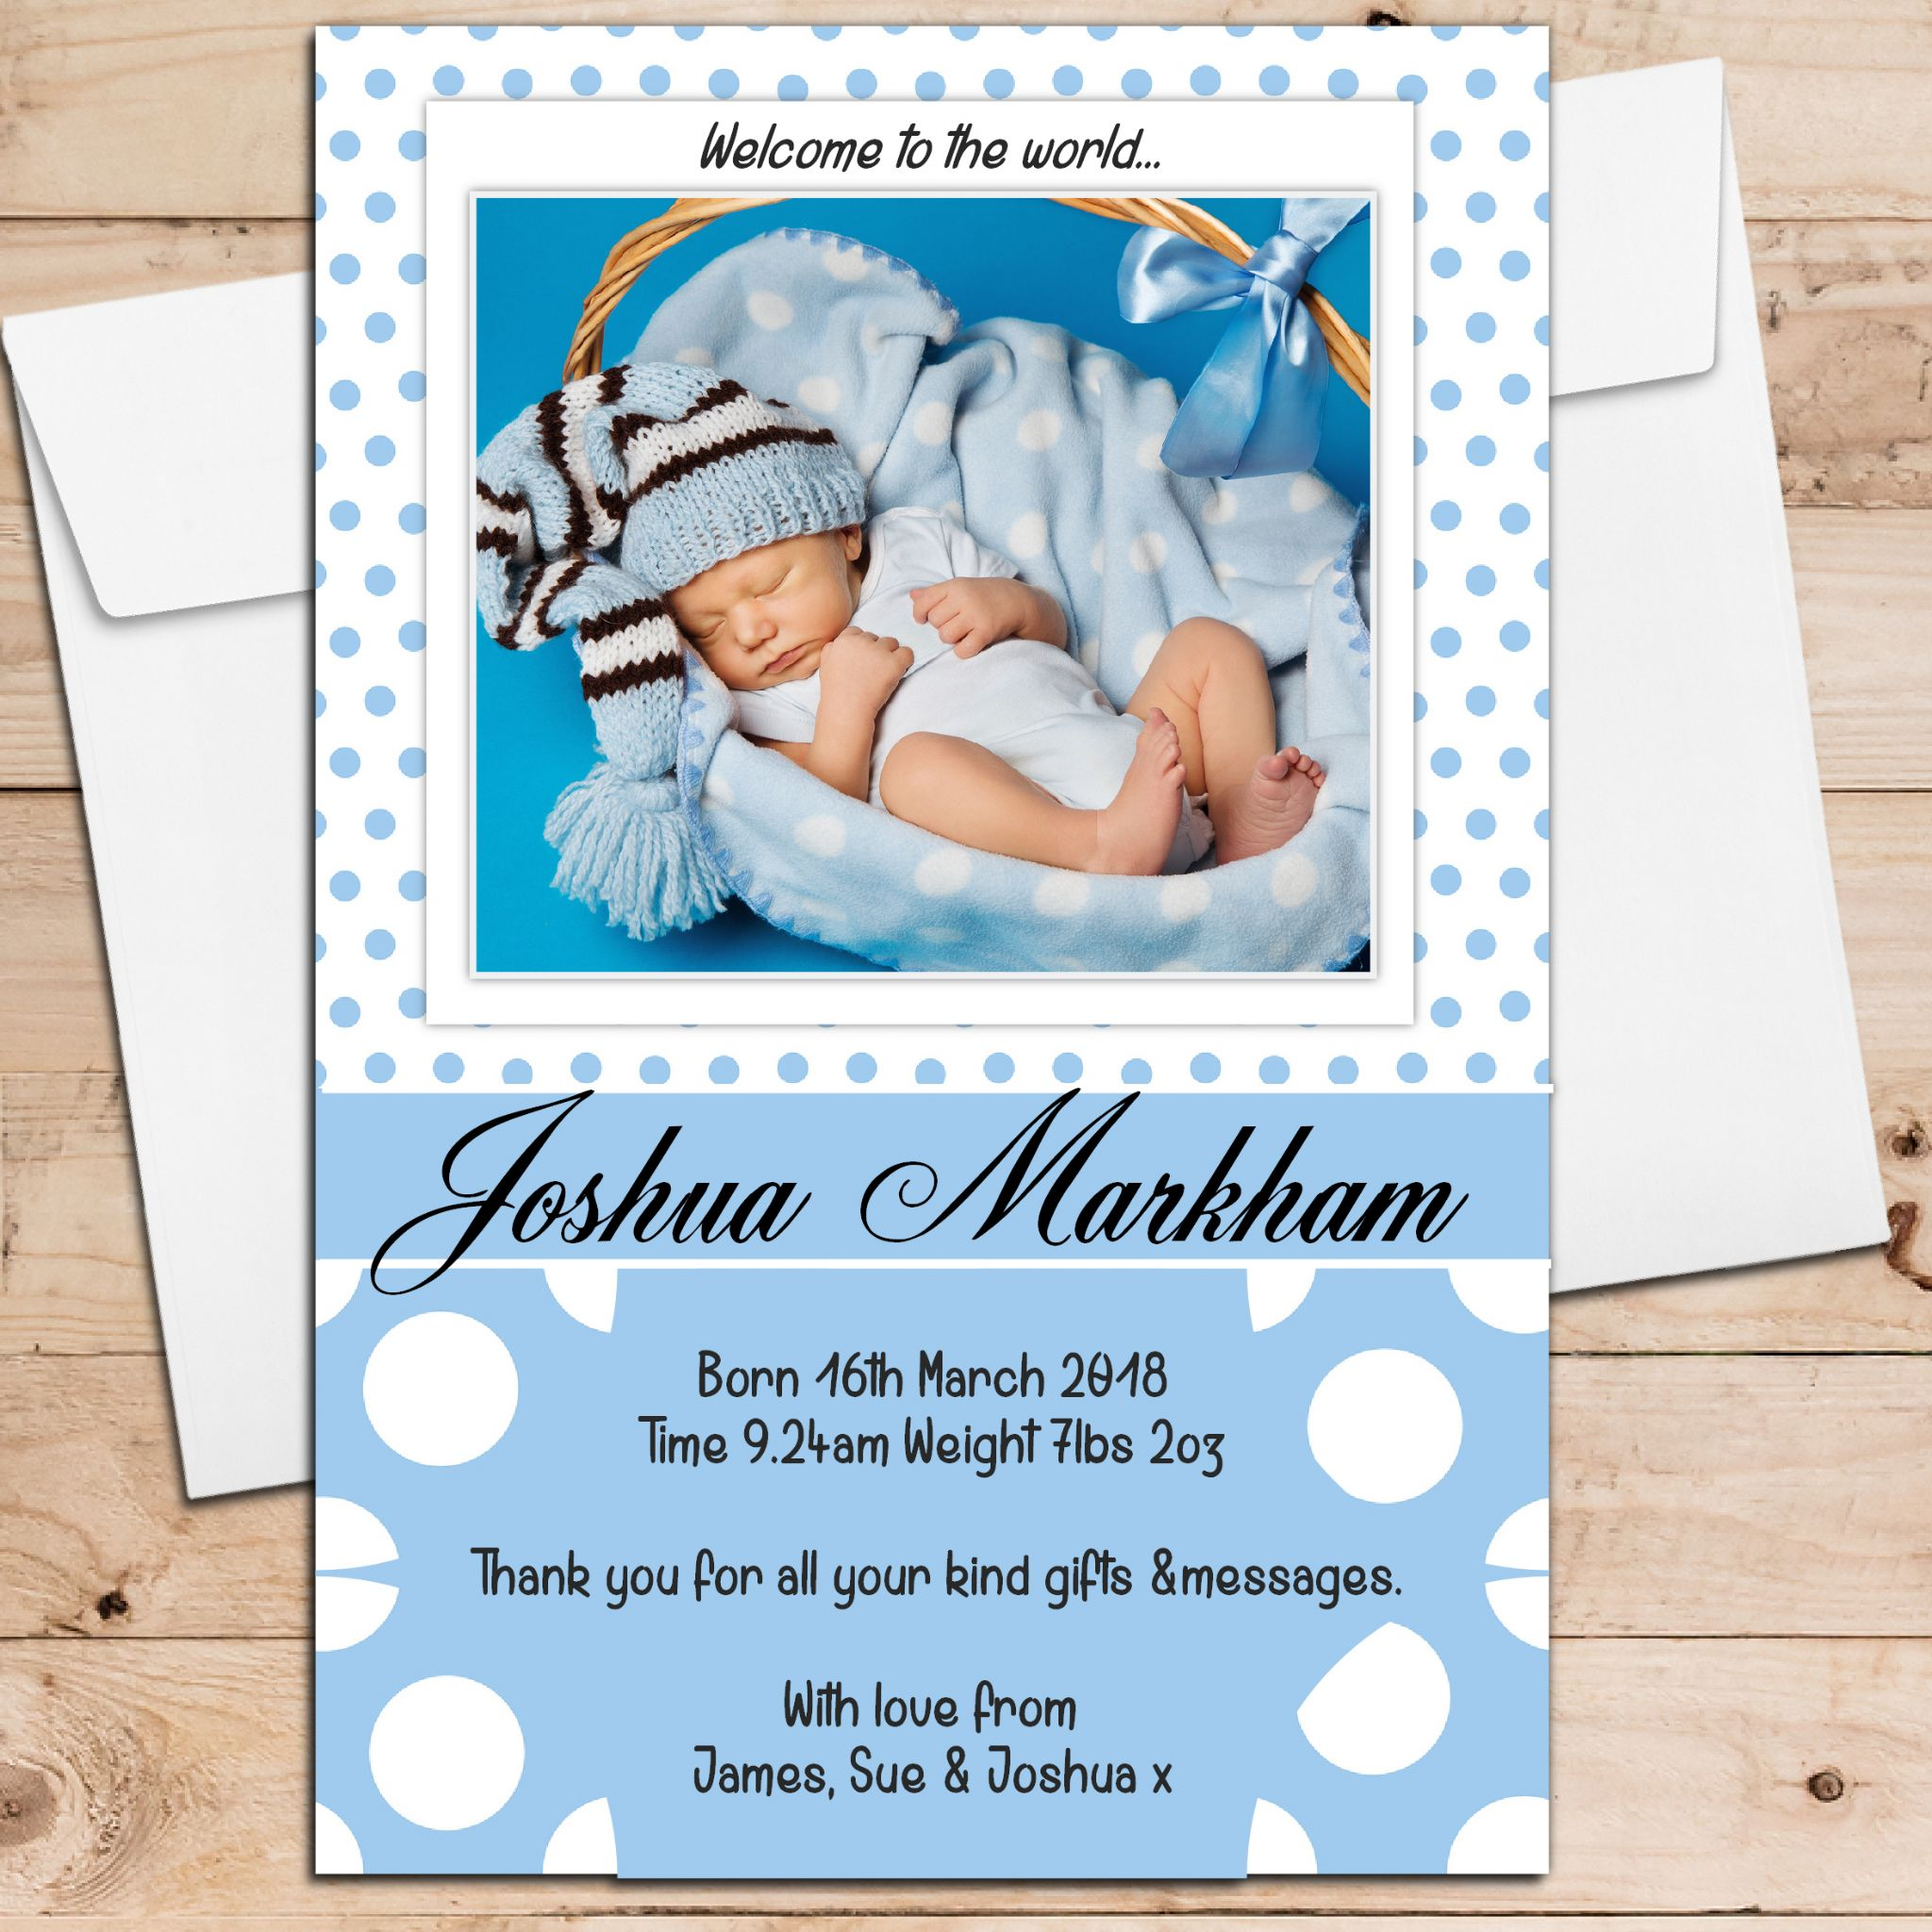 Birth Announcement Cards – Baby Birth Invitation Card